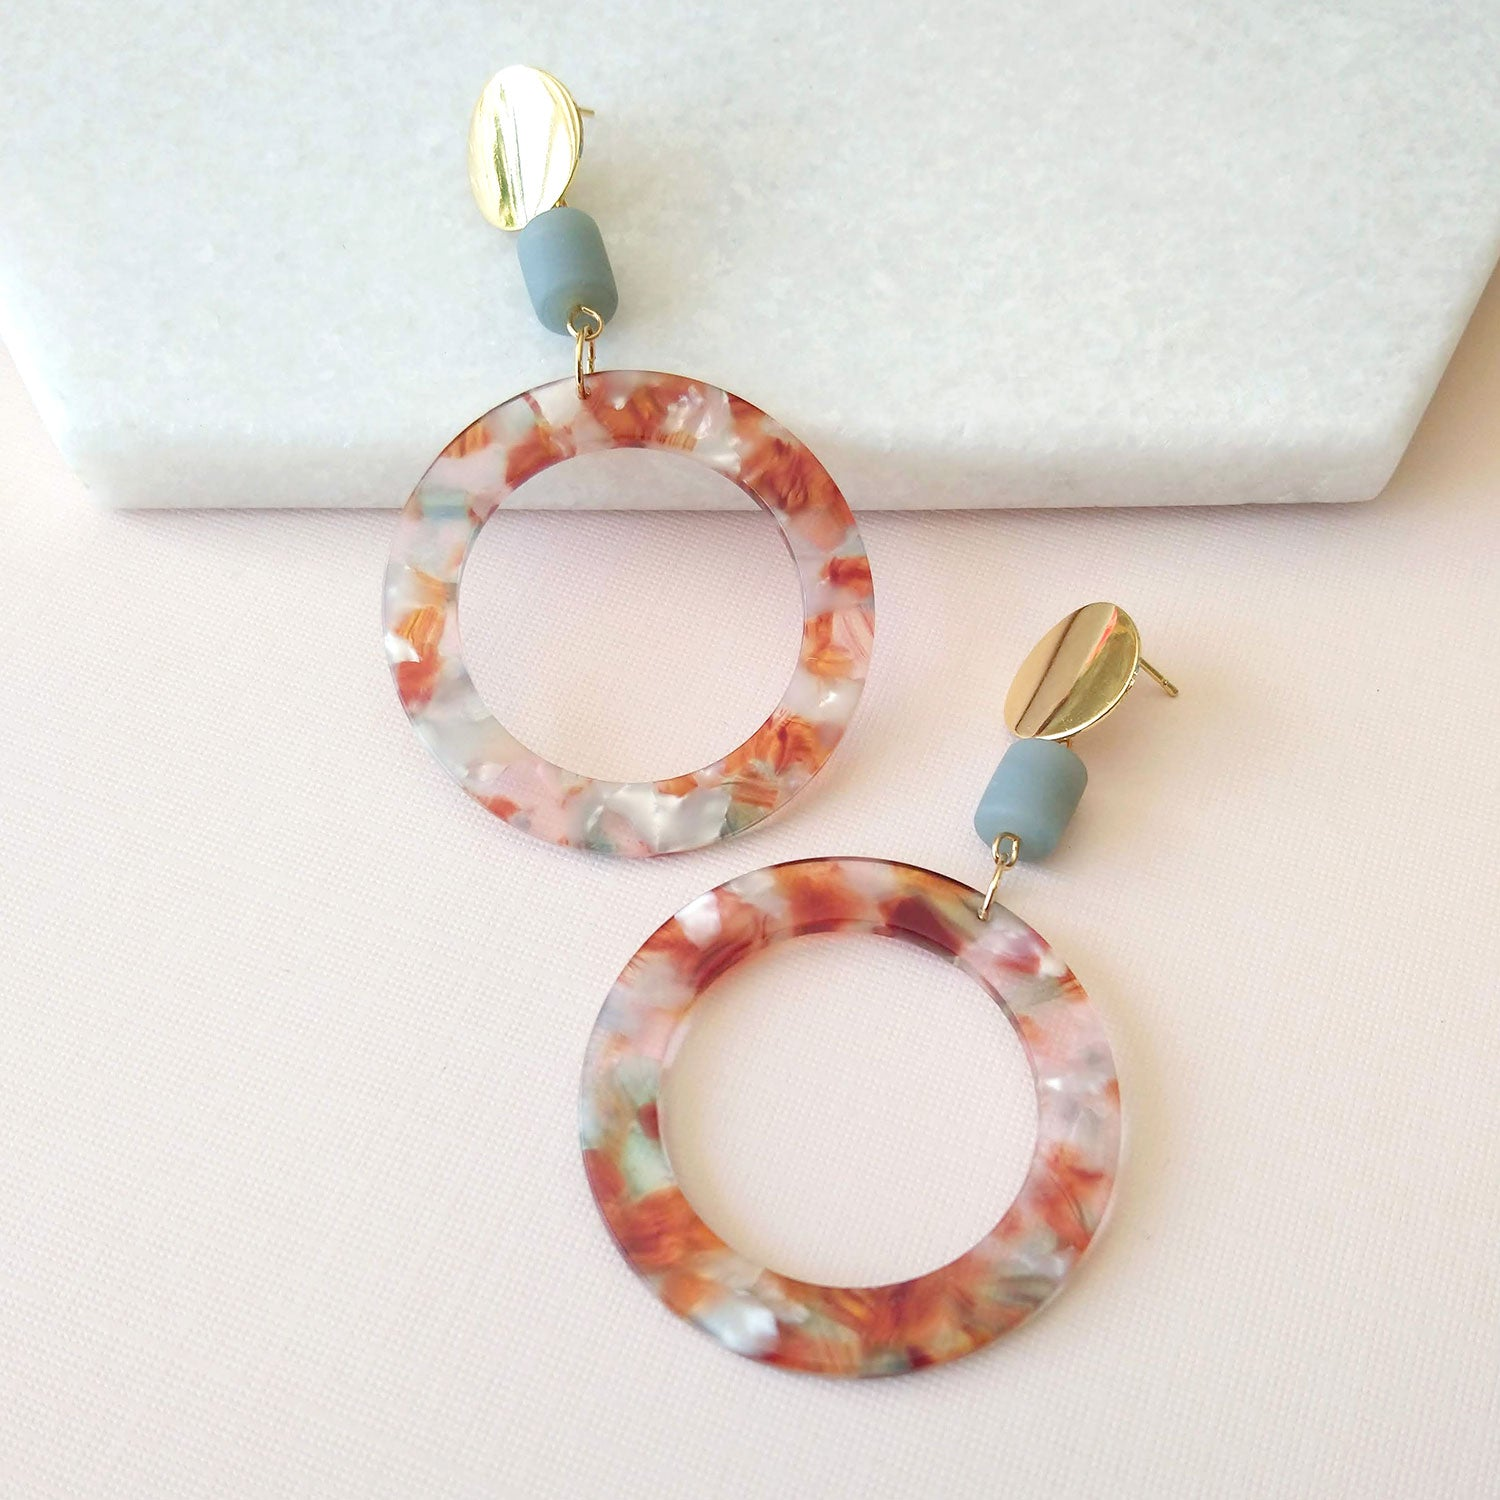 acetate hoops earrings